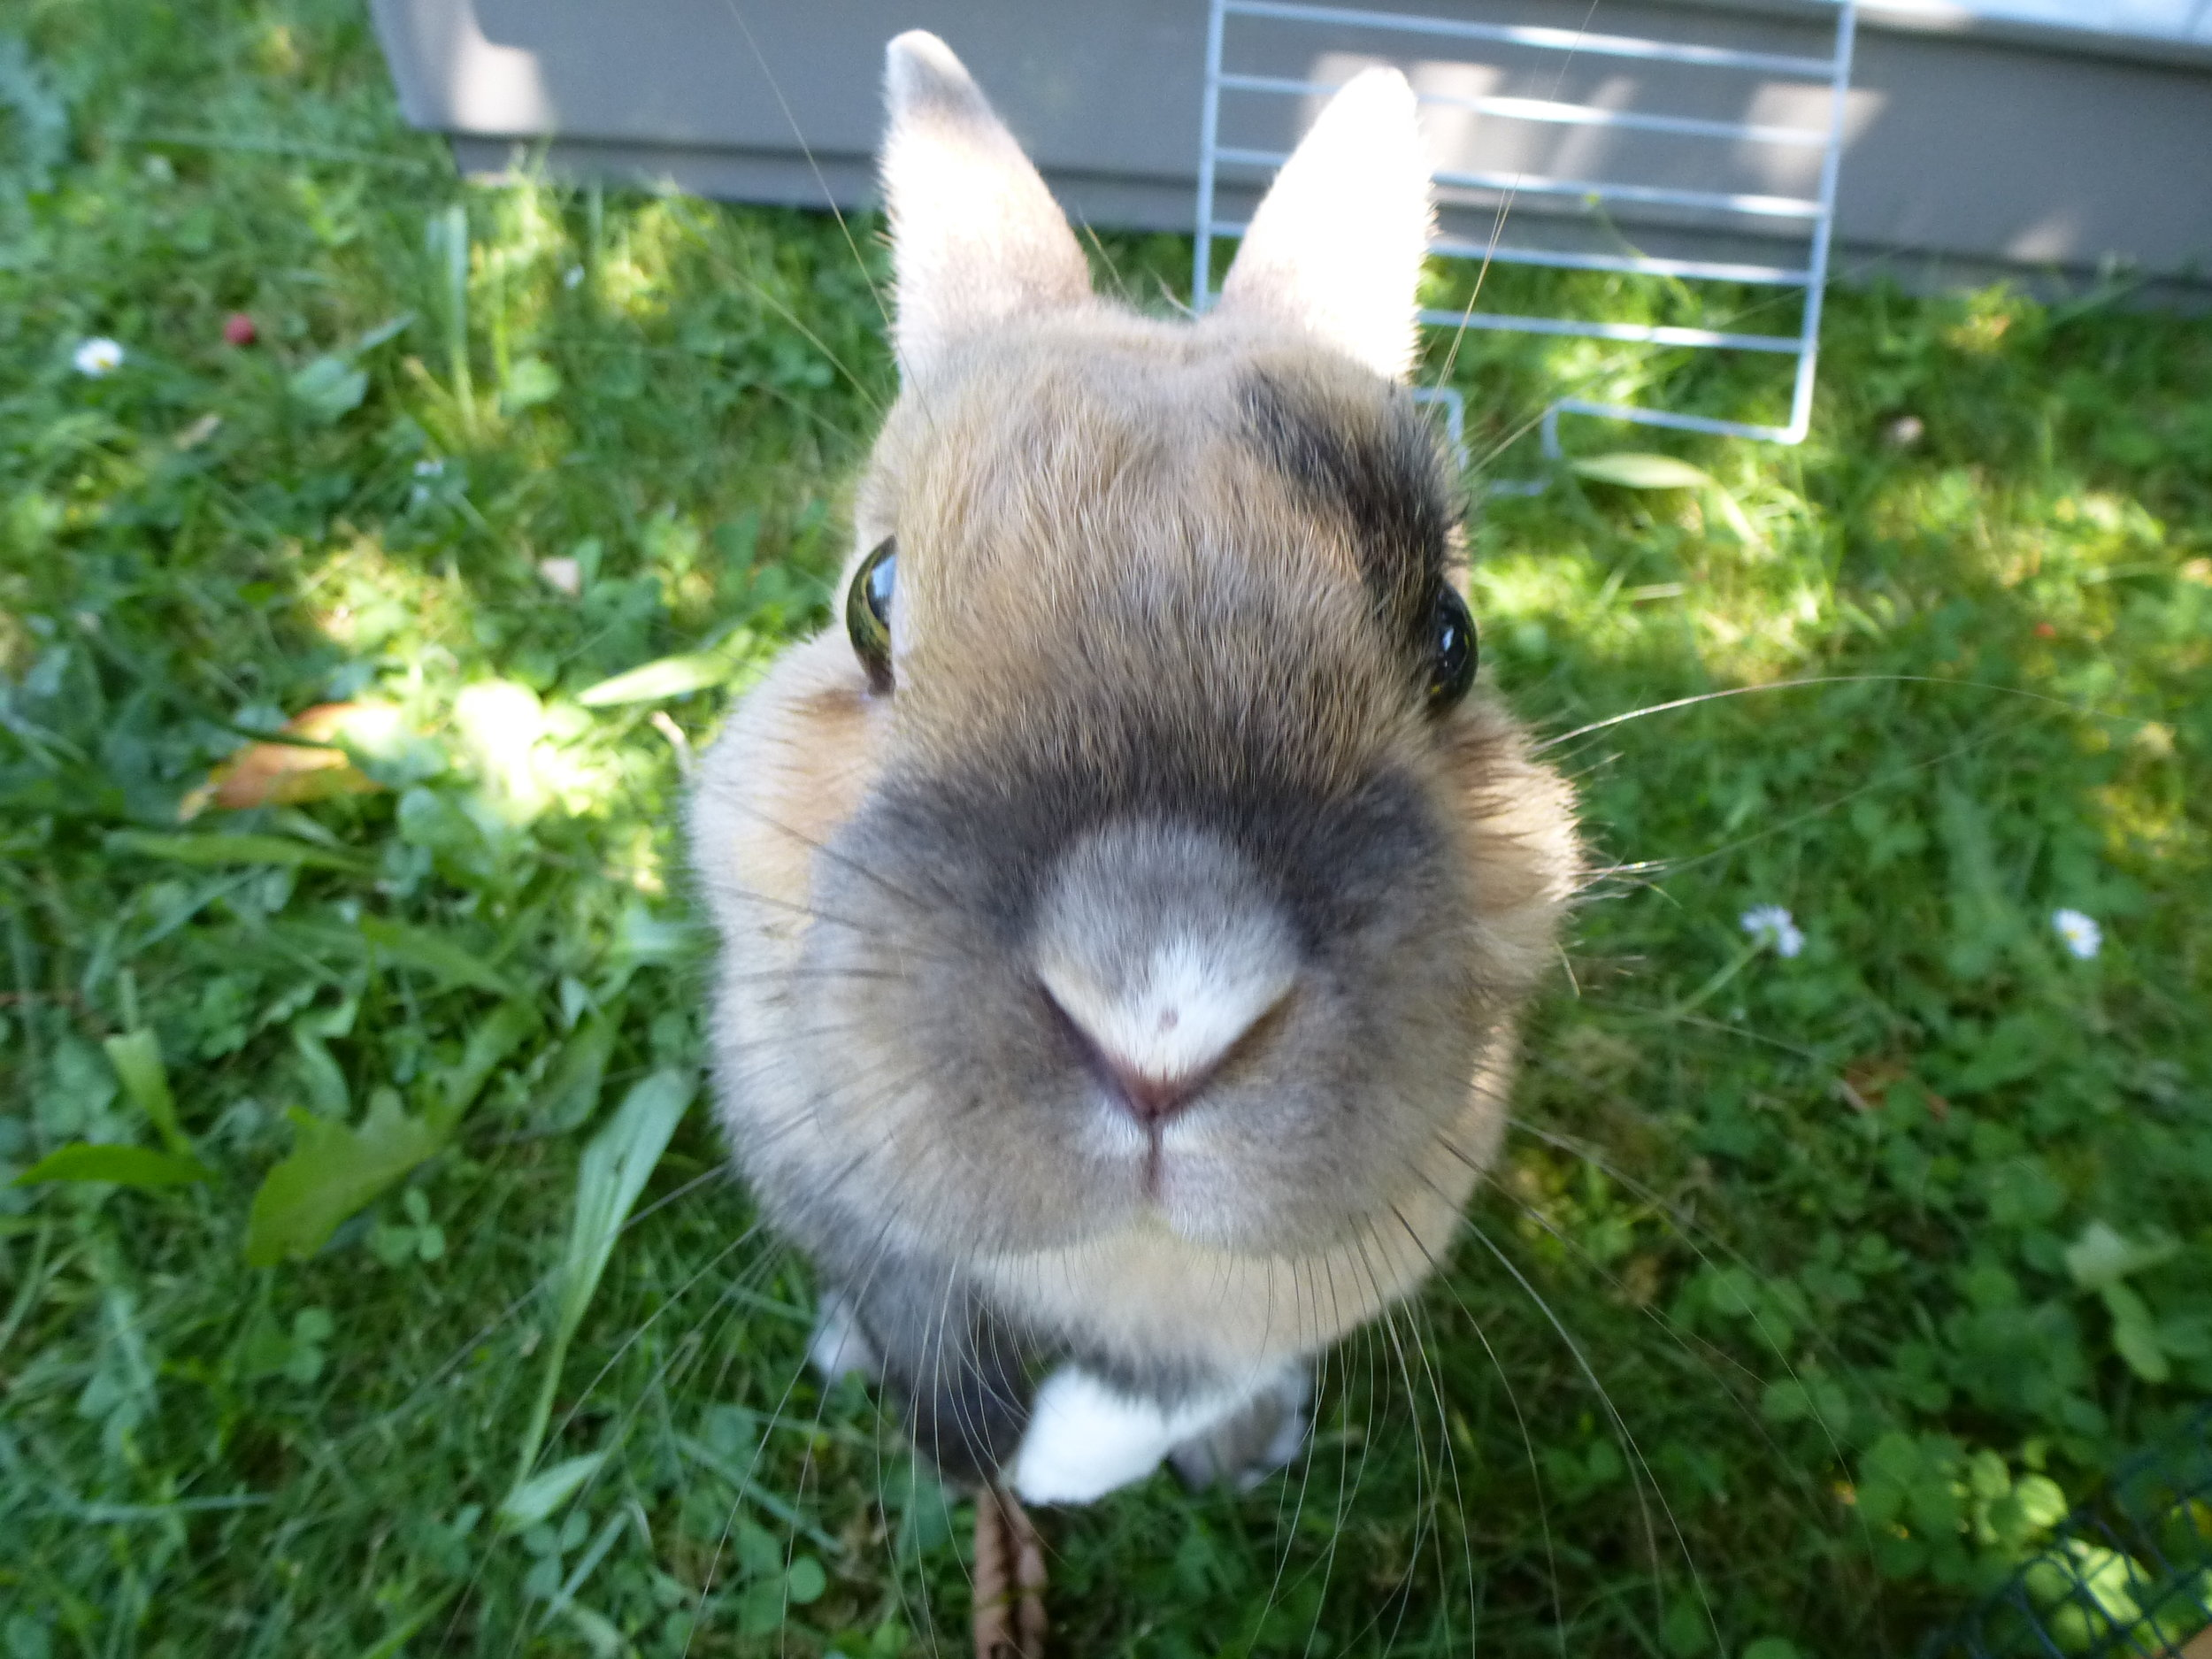 Bunny Reaches Up, Up, Up Toward the Camera